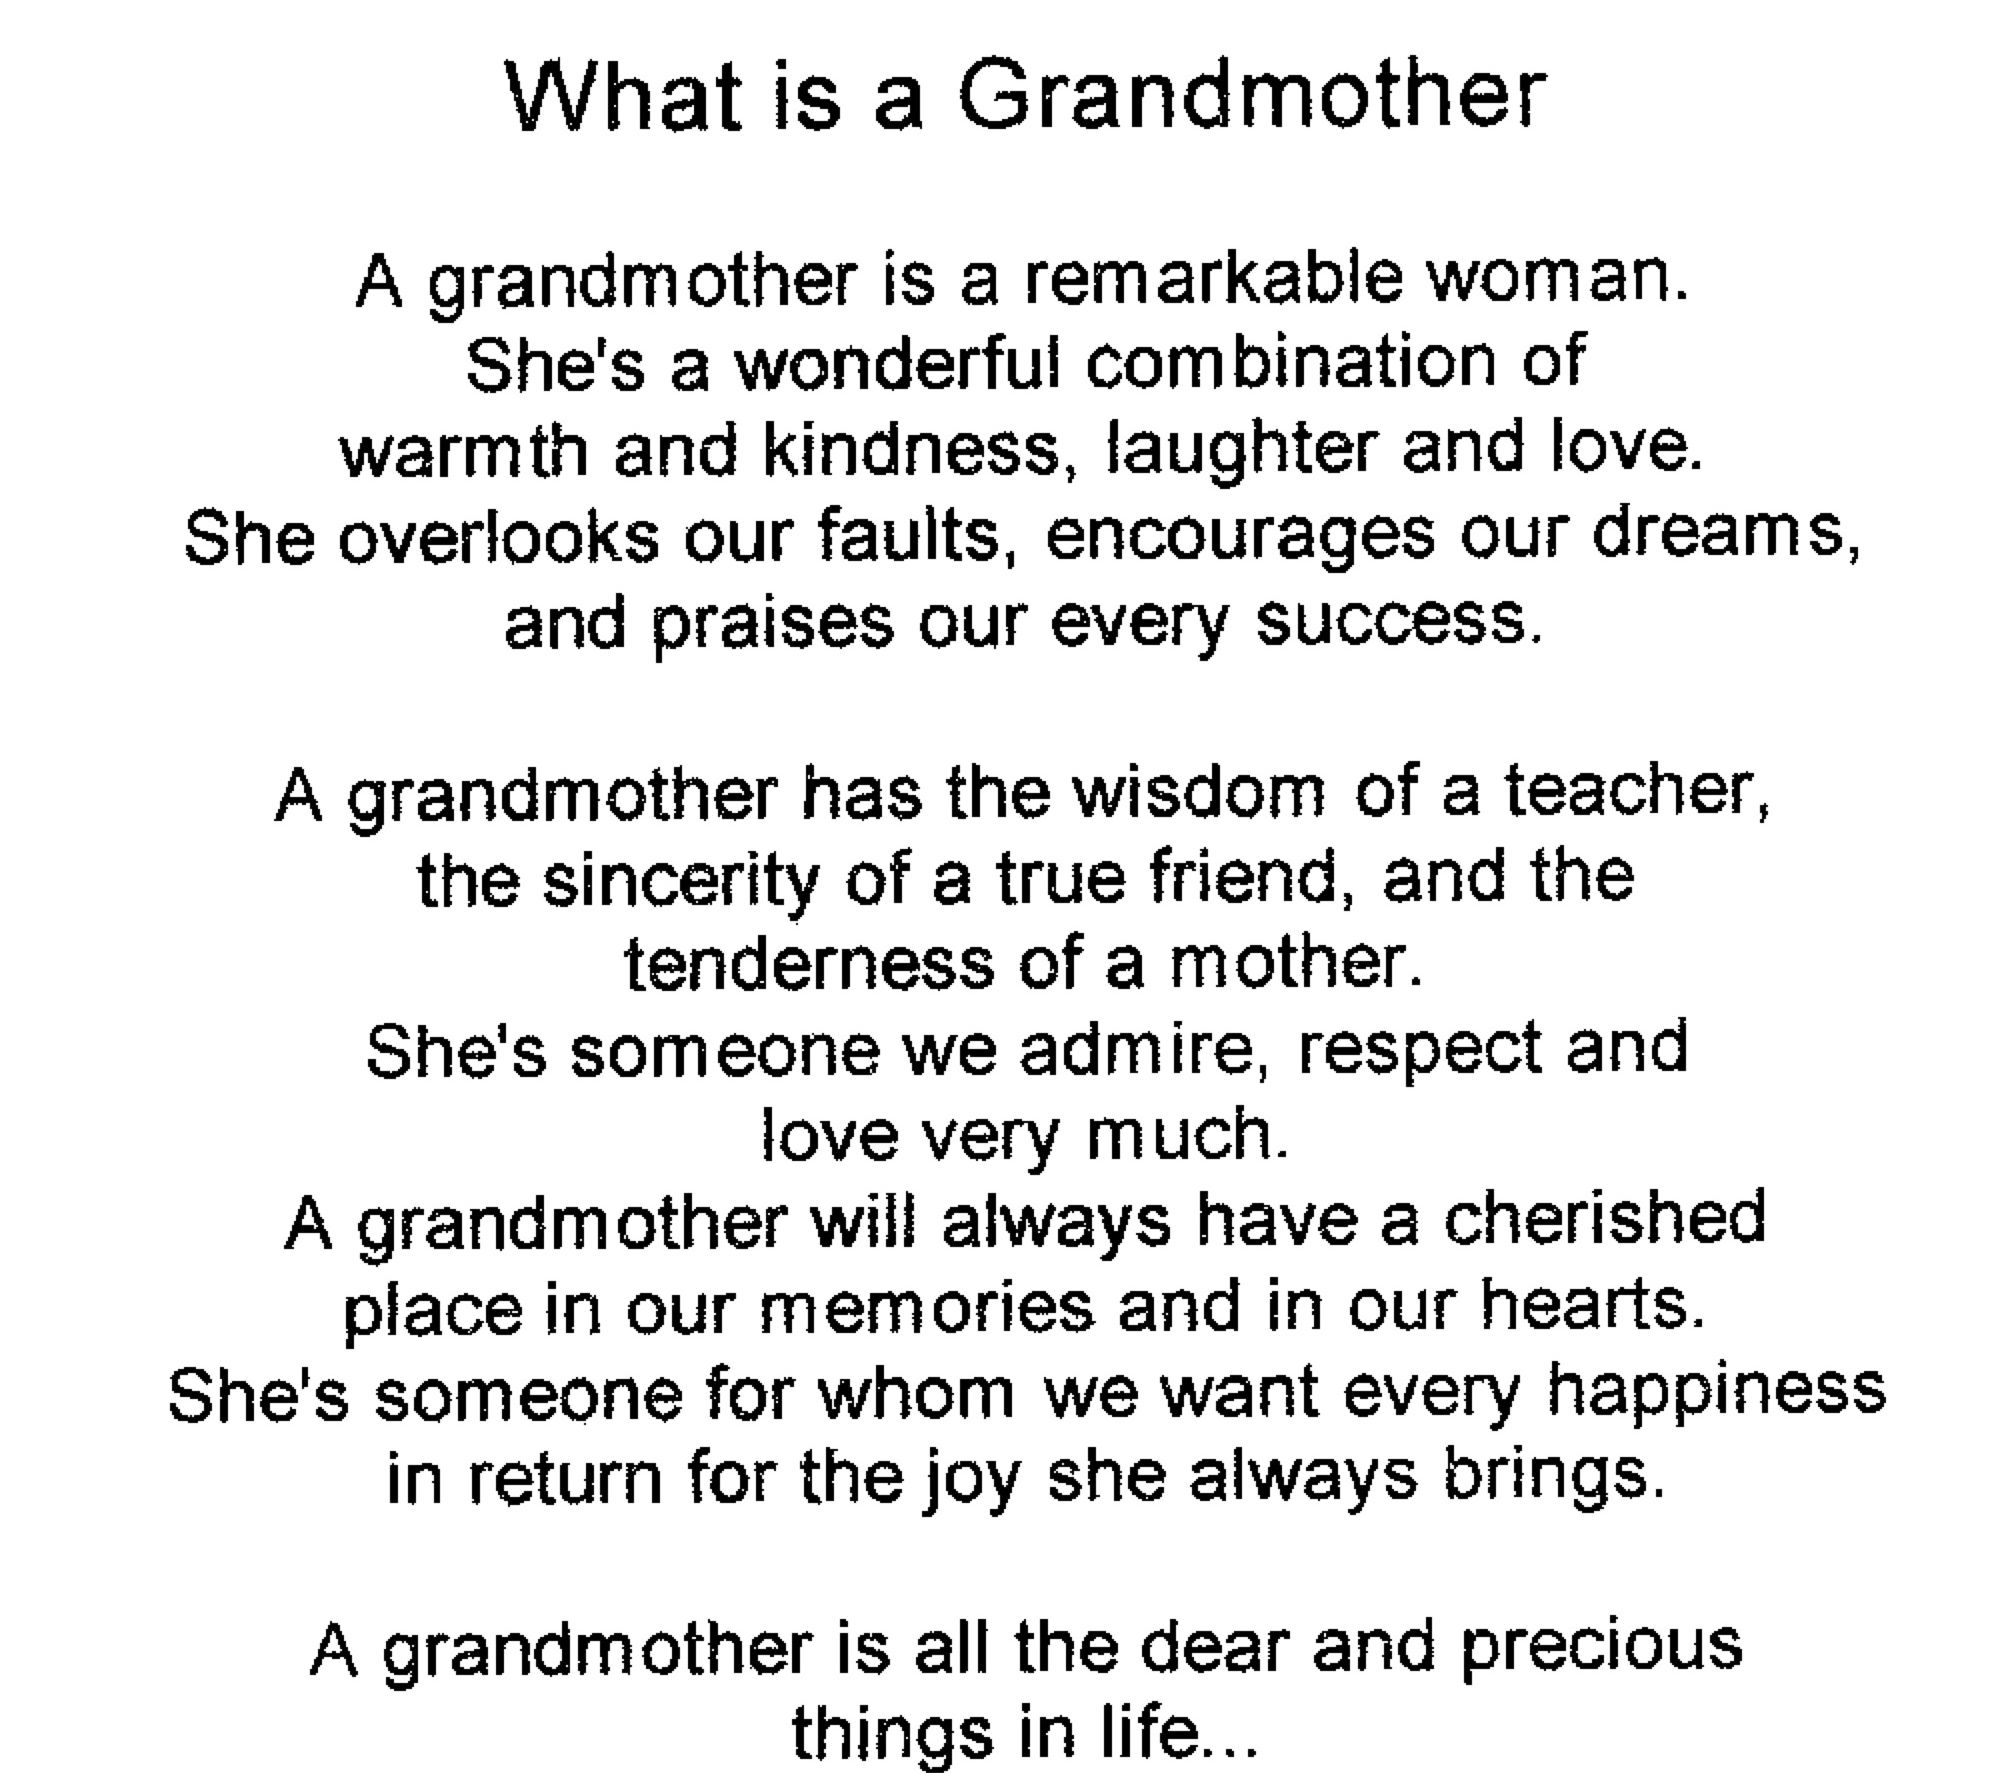 Poem For A Grandmother On Her Birthday - Google Search